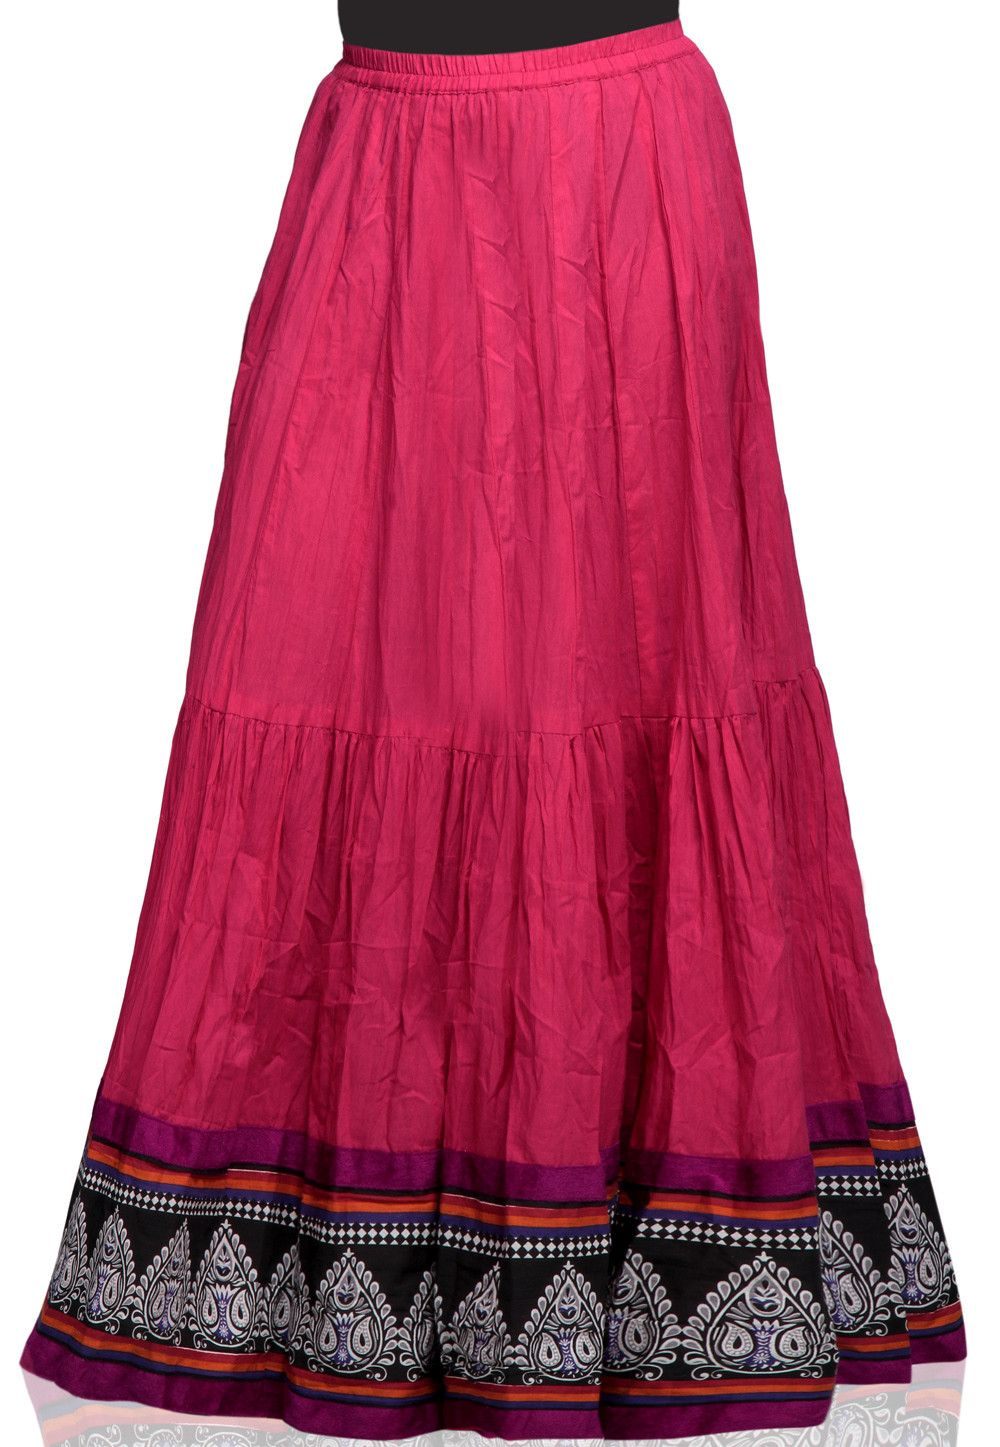 b92ee3511 Printed Crushed Cotton Skirt in Fuchsia | Wardrobe Goals in 2019 ...